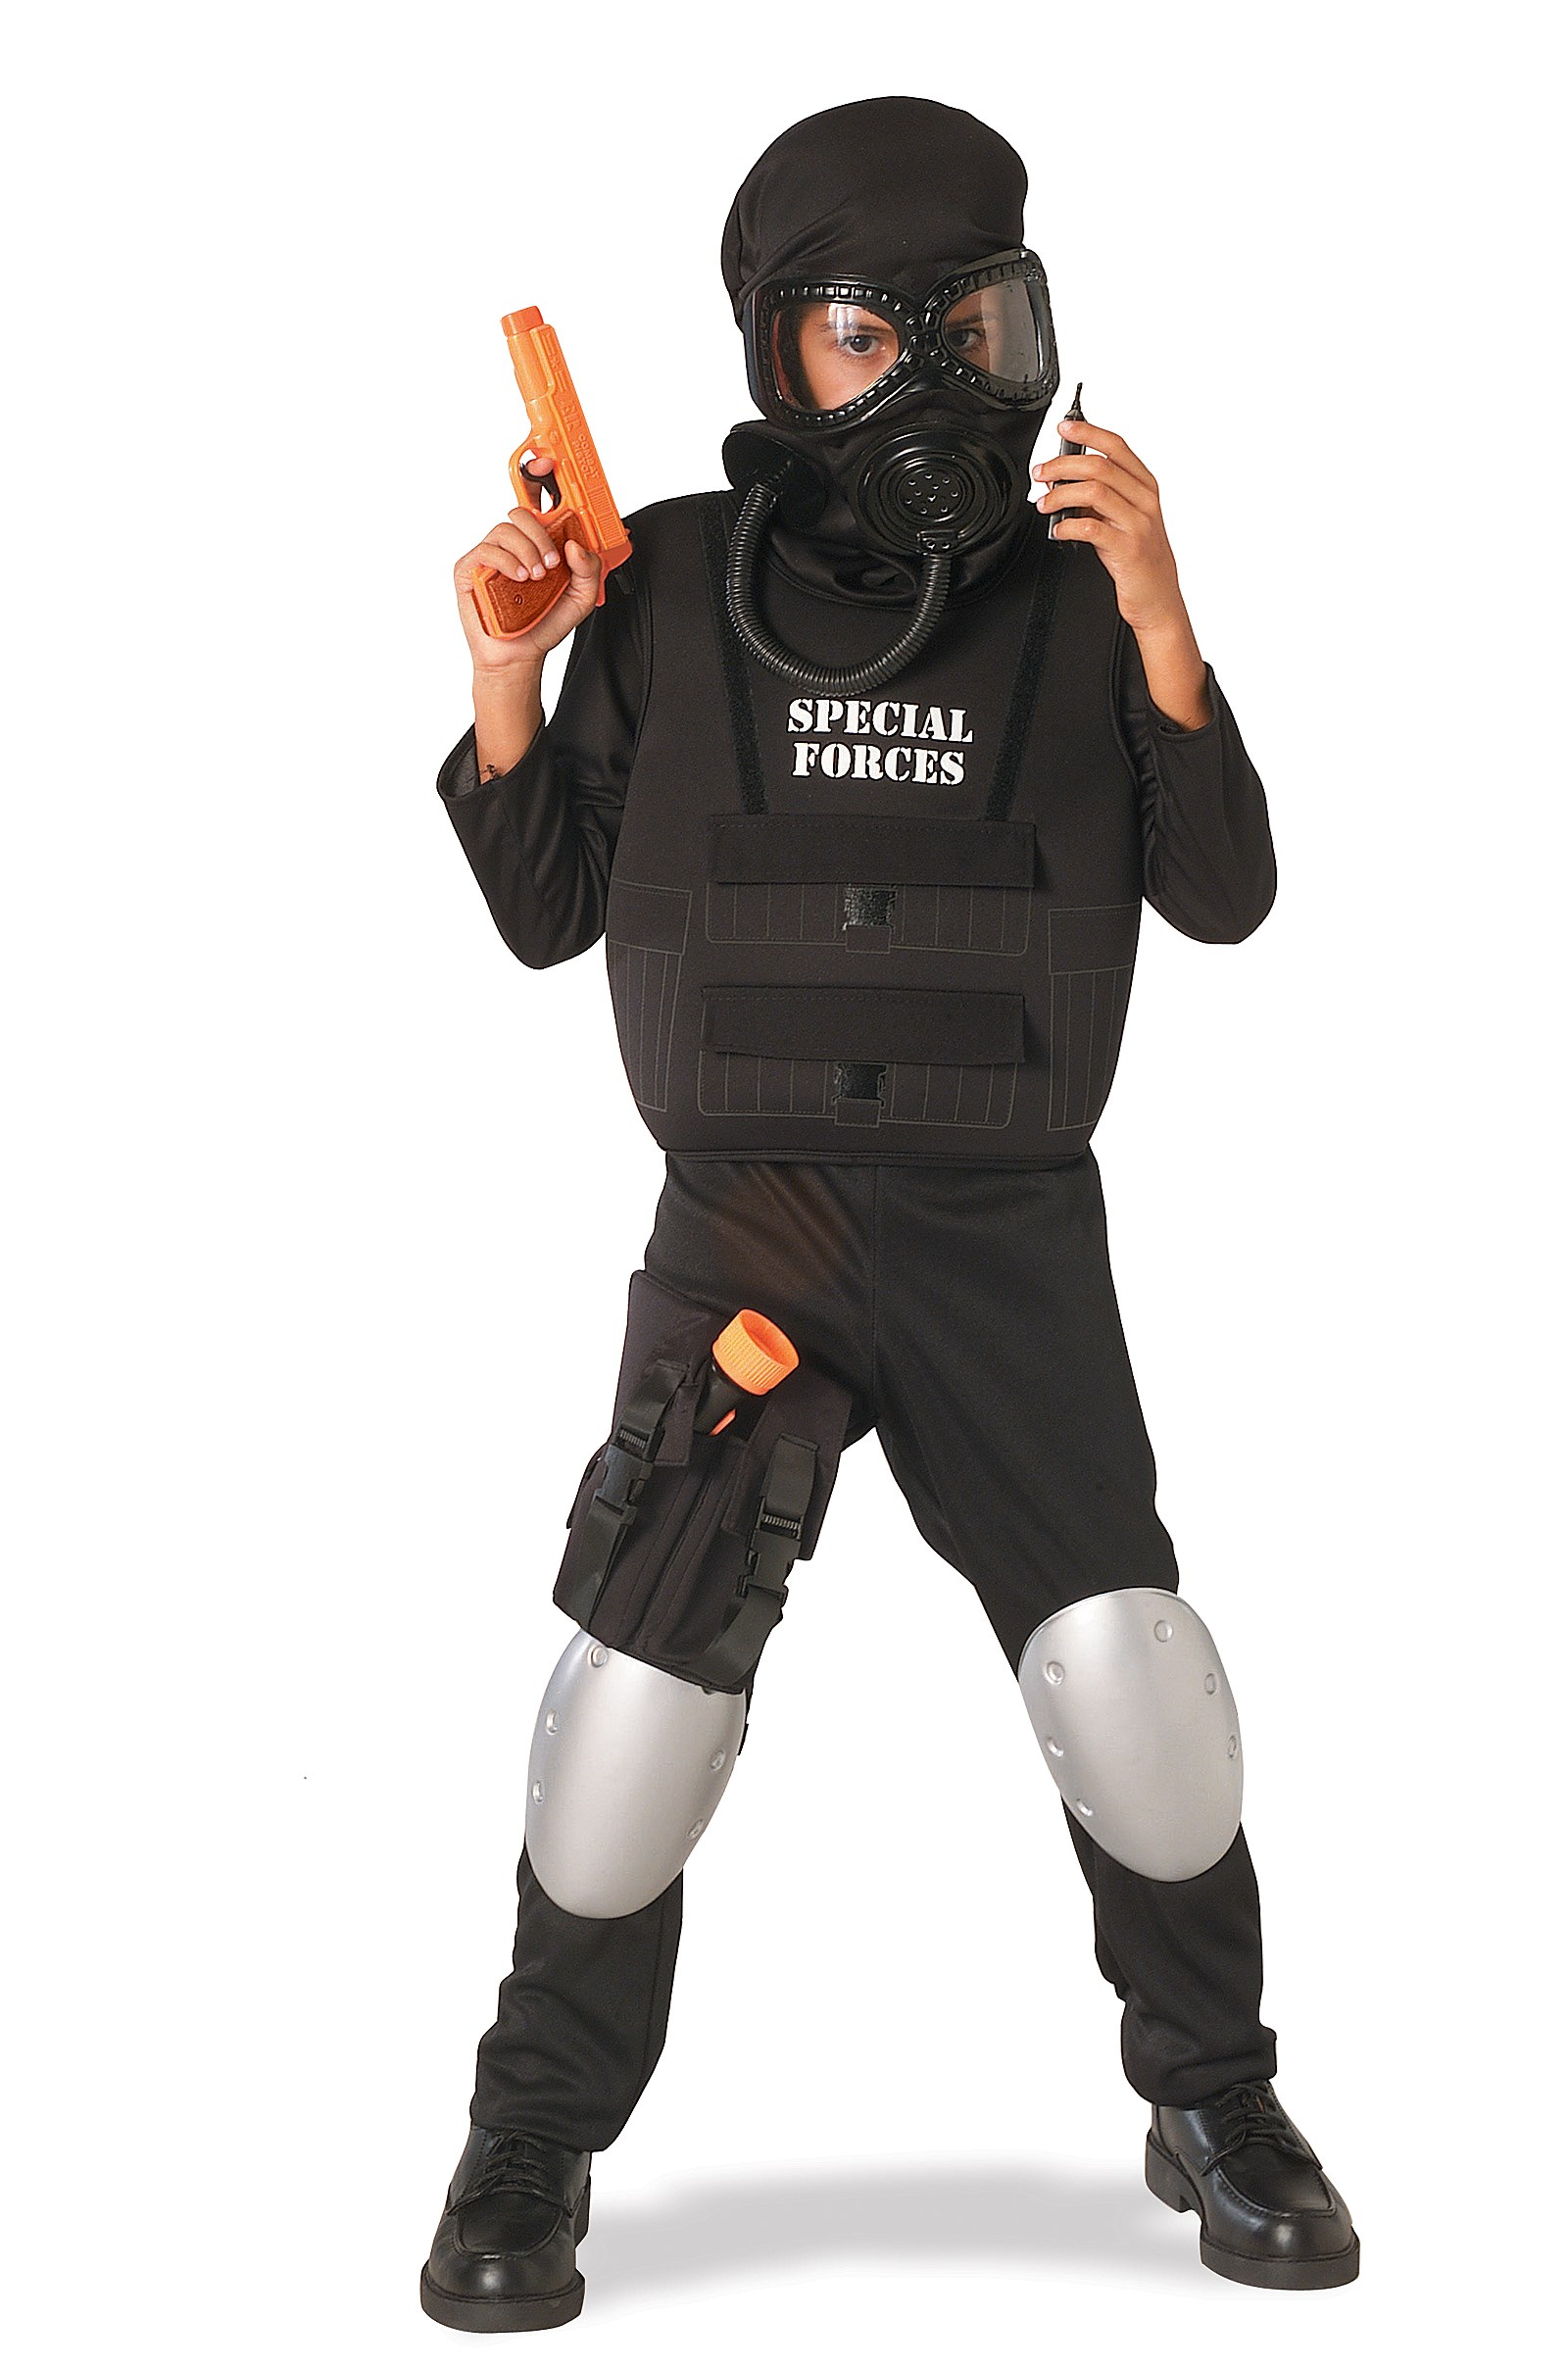 Special Forces Officer Child Costume